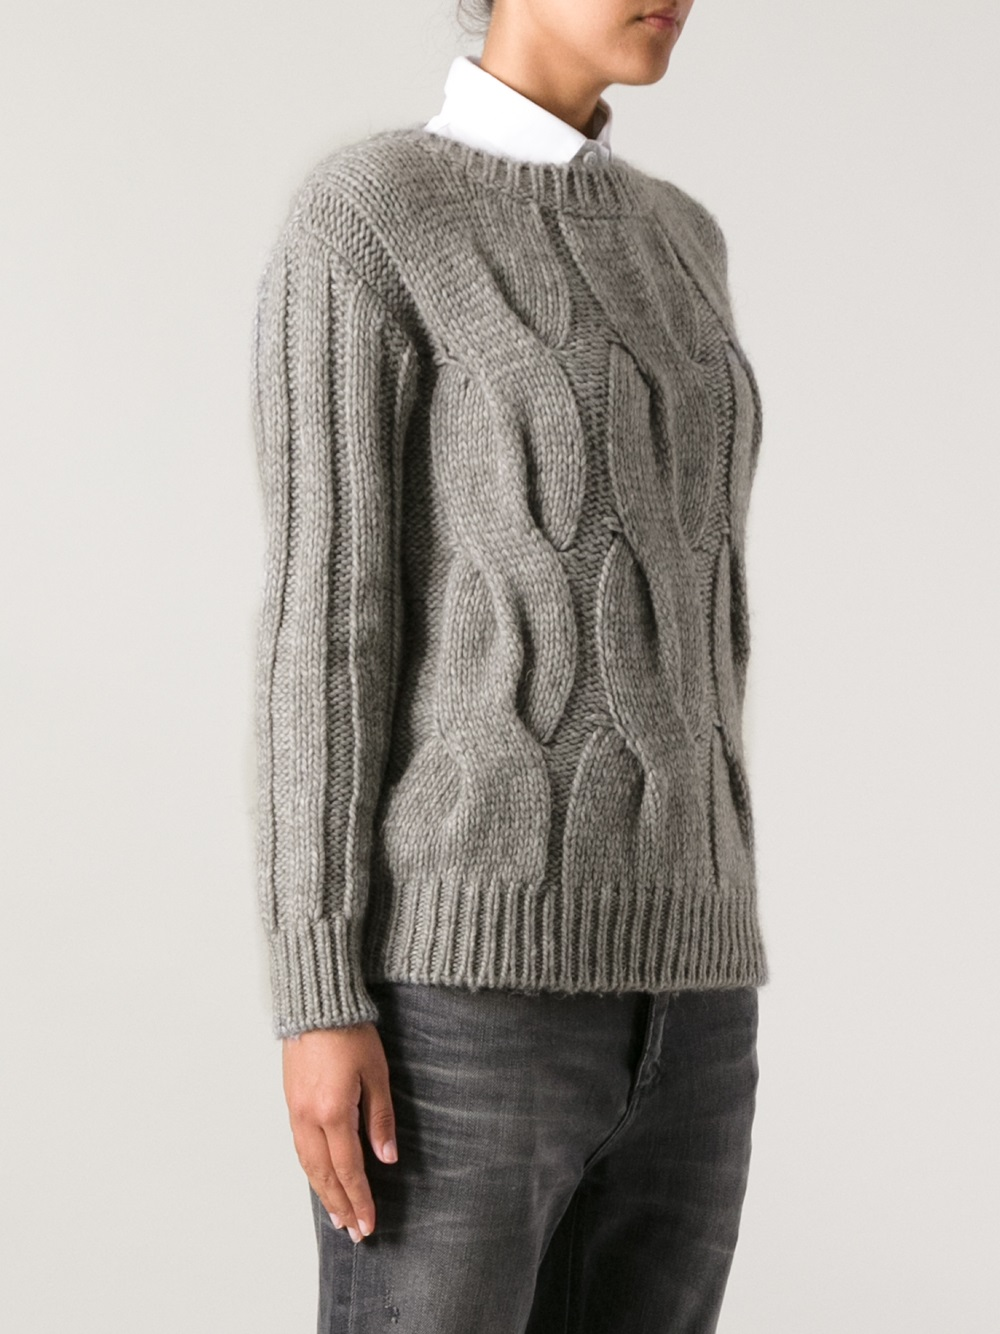 de4ae3f1127b Lyst - Moncler Grenoble Chunky Cable Knit Sweater in Gray